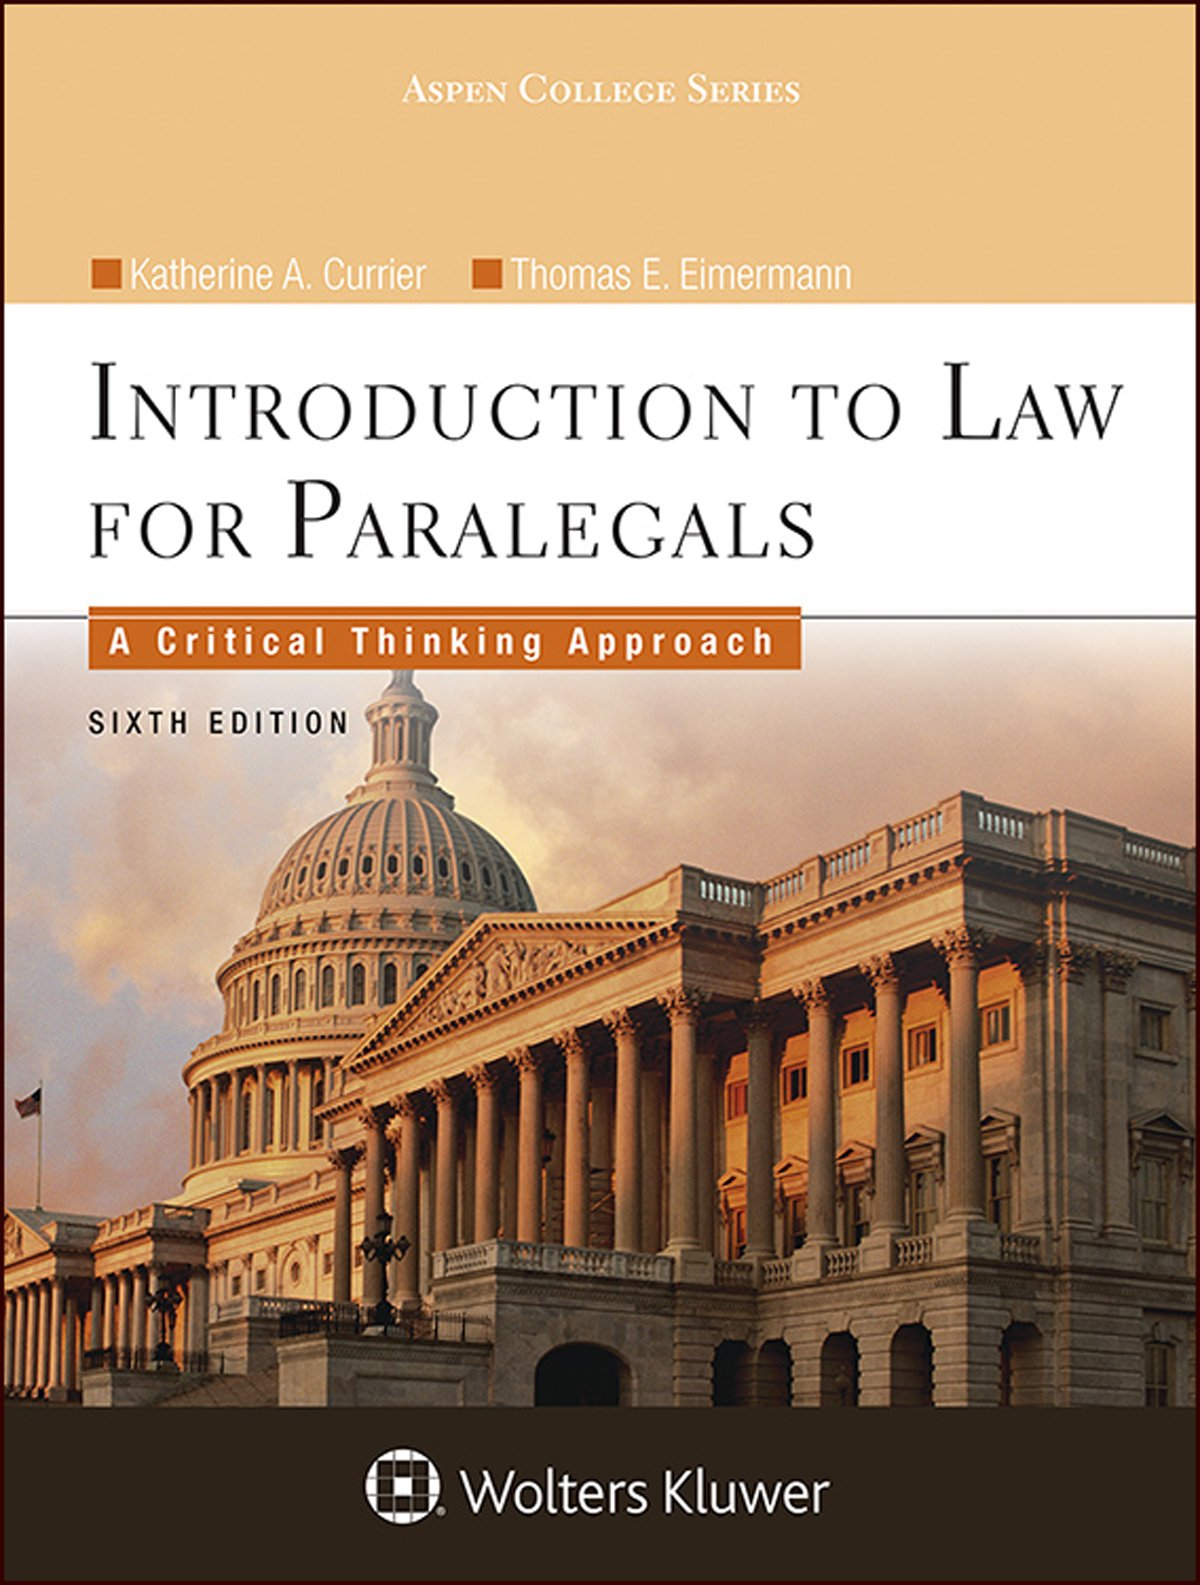 Introduction To Law for Paralegals: A Critical Thinking Approach (Aspen College) by Wolters Kluwer Law & Business